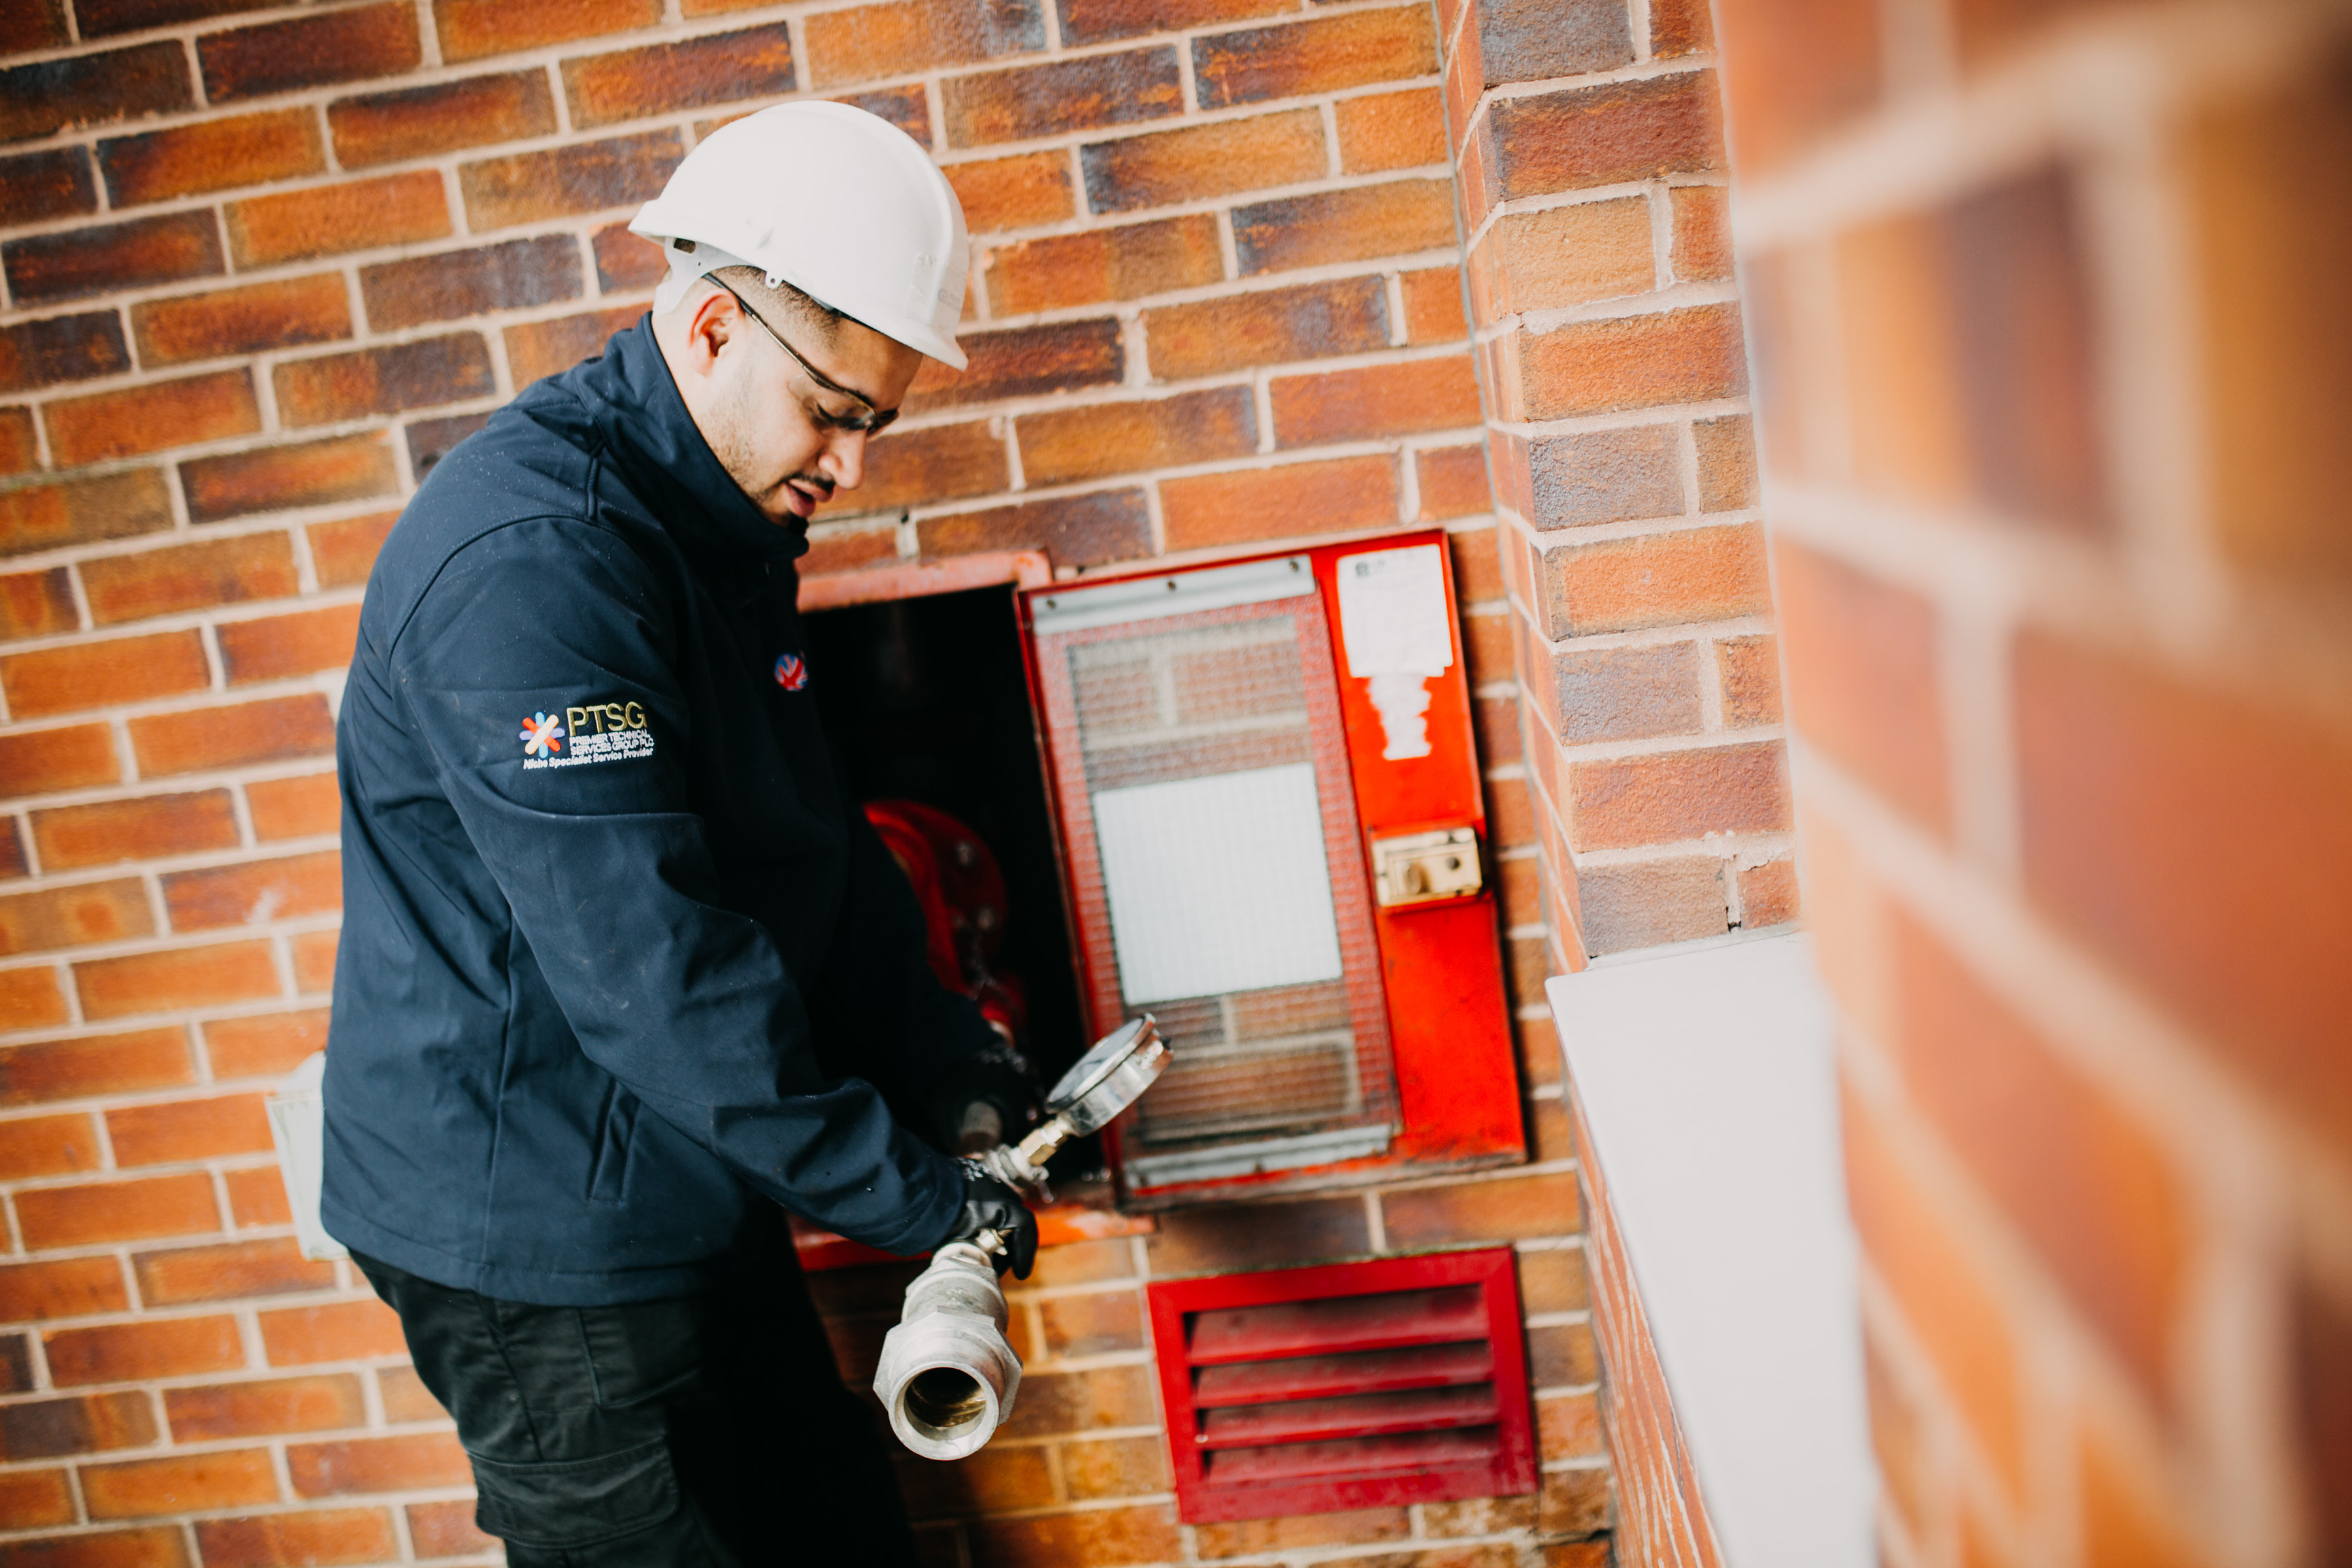 PTSG to deliver another year of specialist services for Kier